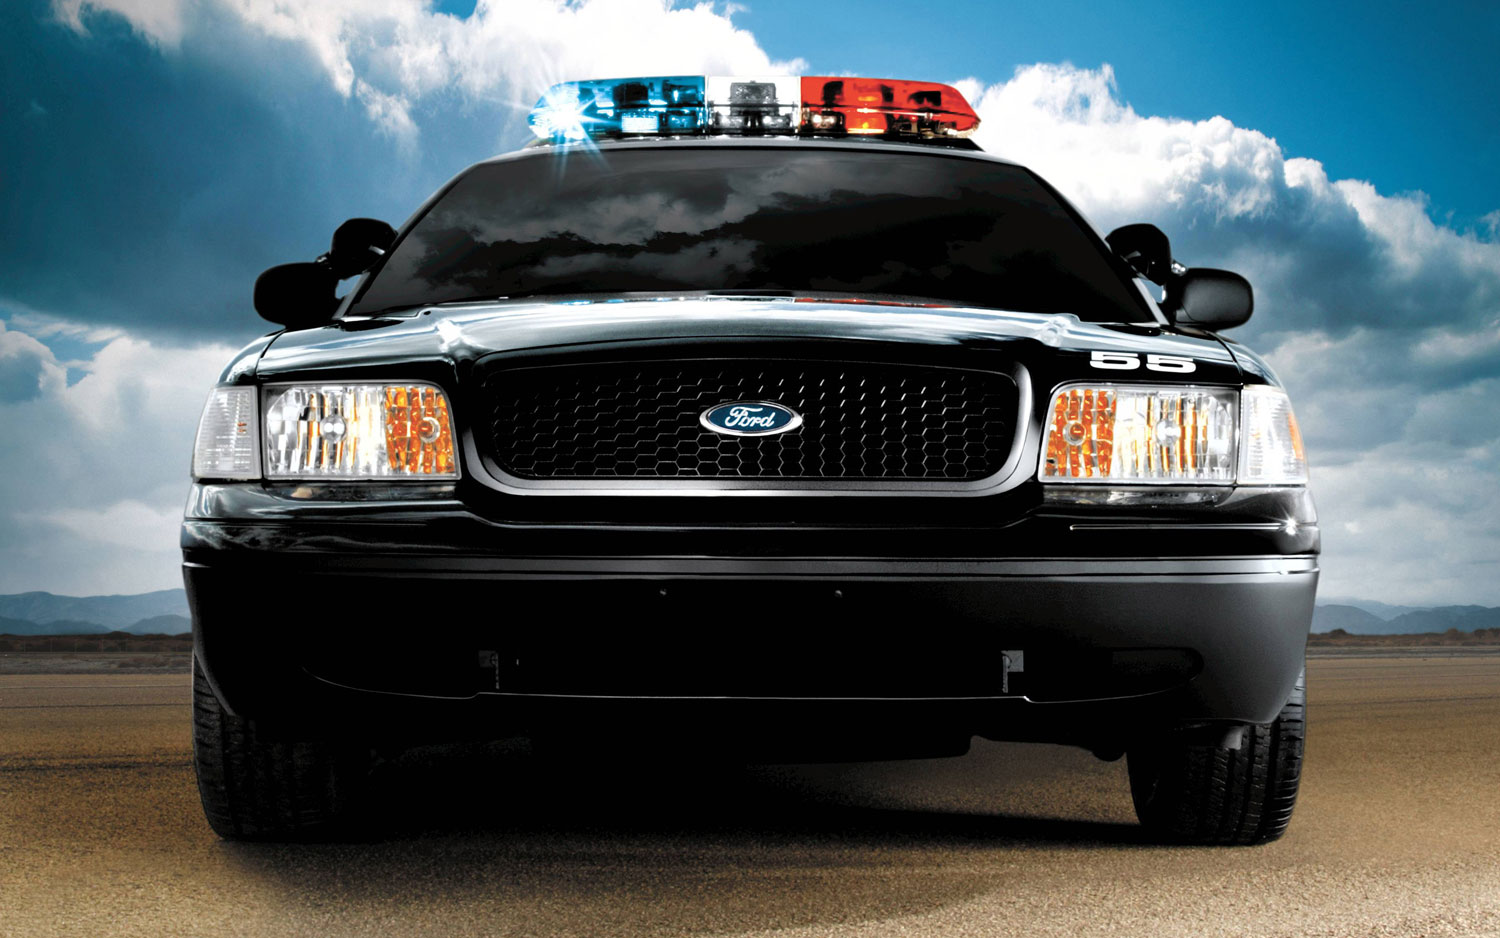 2005 Ford Crown Victoria Police Interceptor Front1